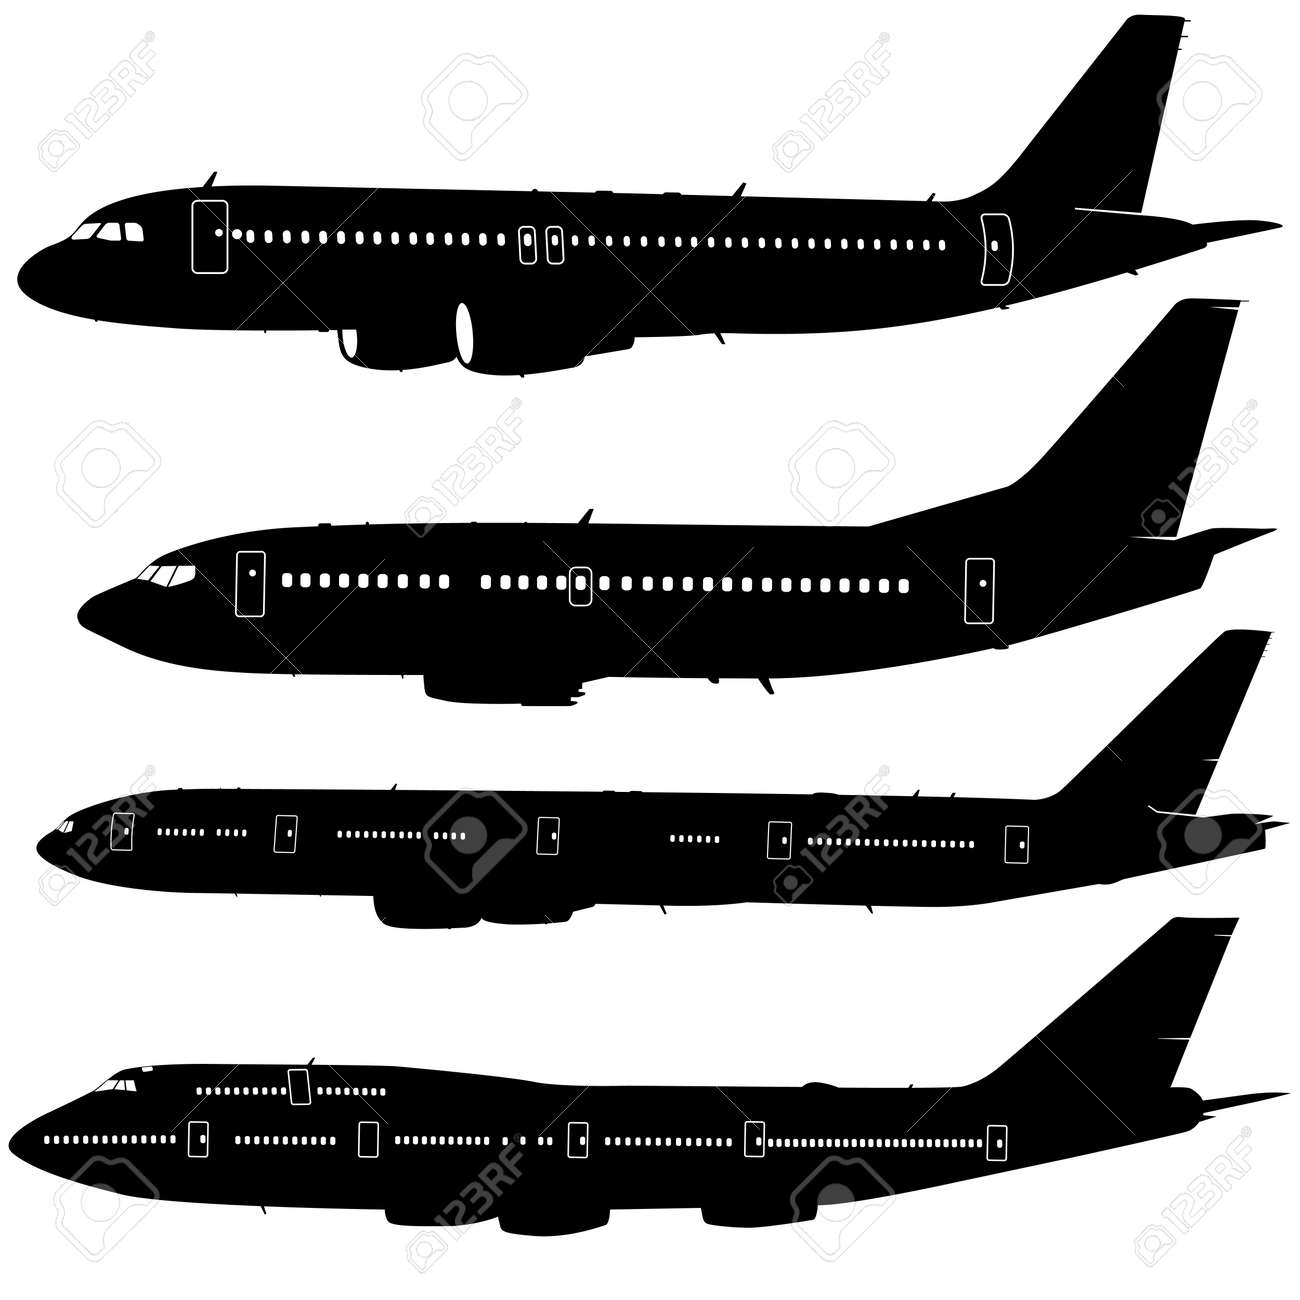 Collection of different aircraft silhouettes. vector illustration - 37738015